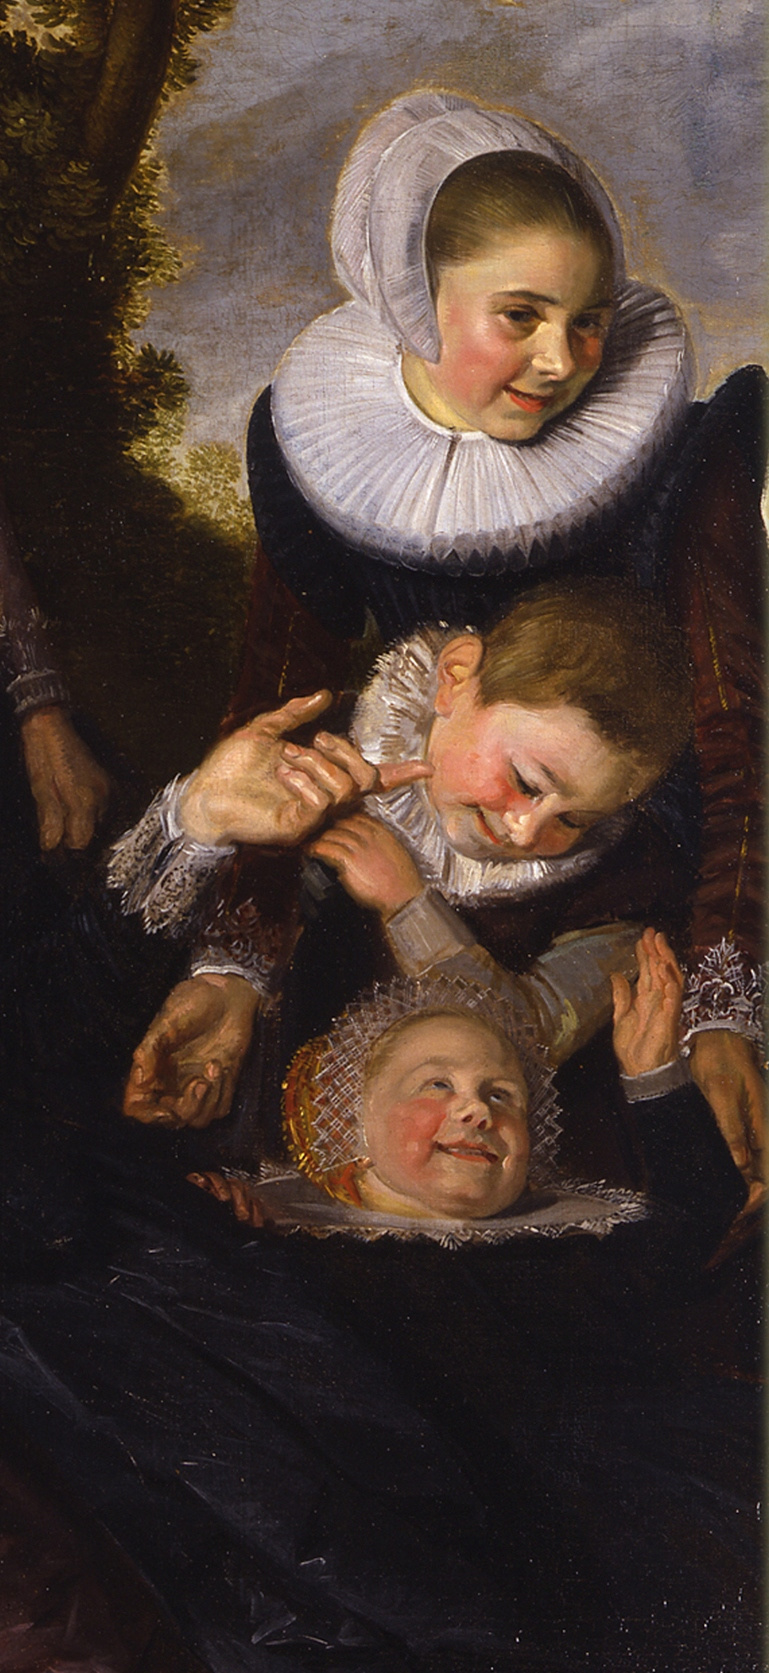 Frans Hals. Portrait of a family with children against the backdrop of the landscape. Fragment. Frolicking children